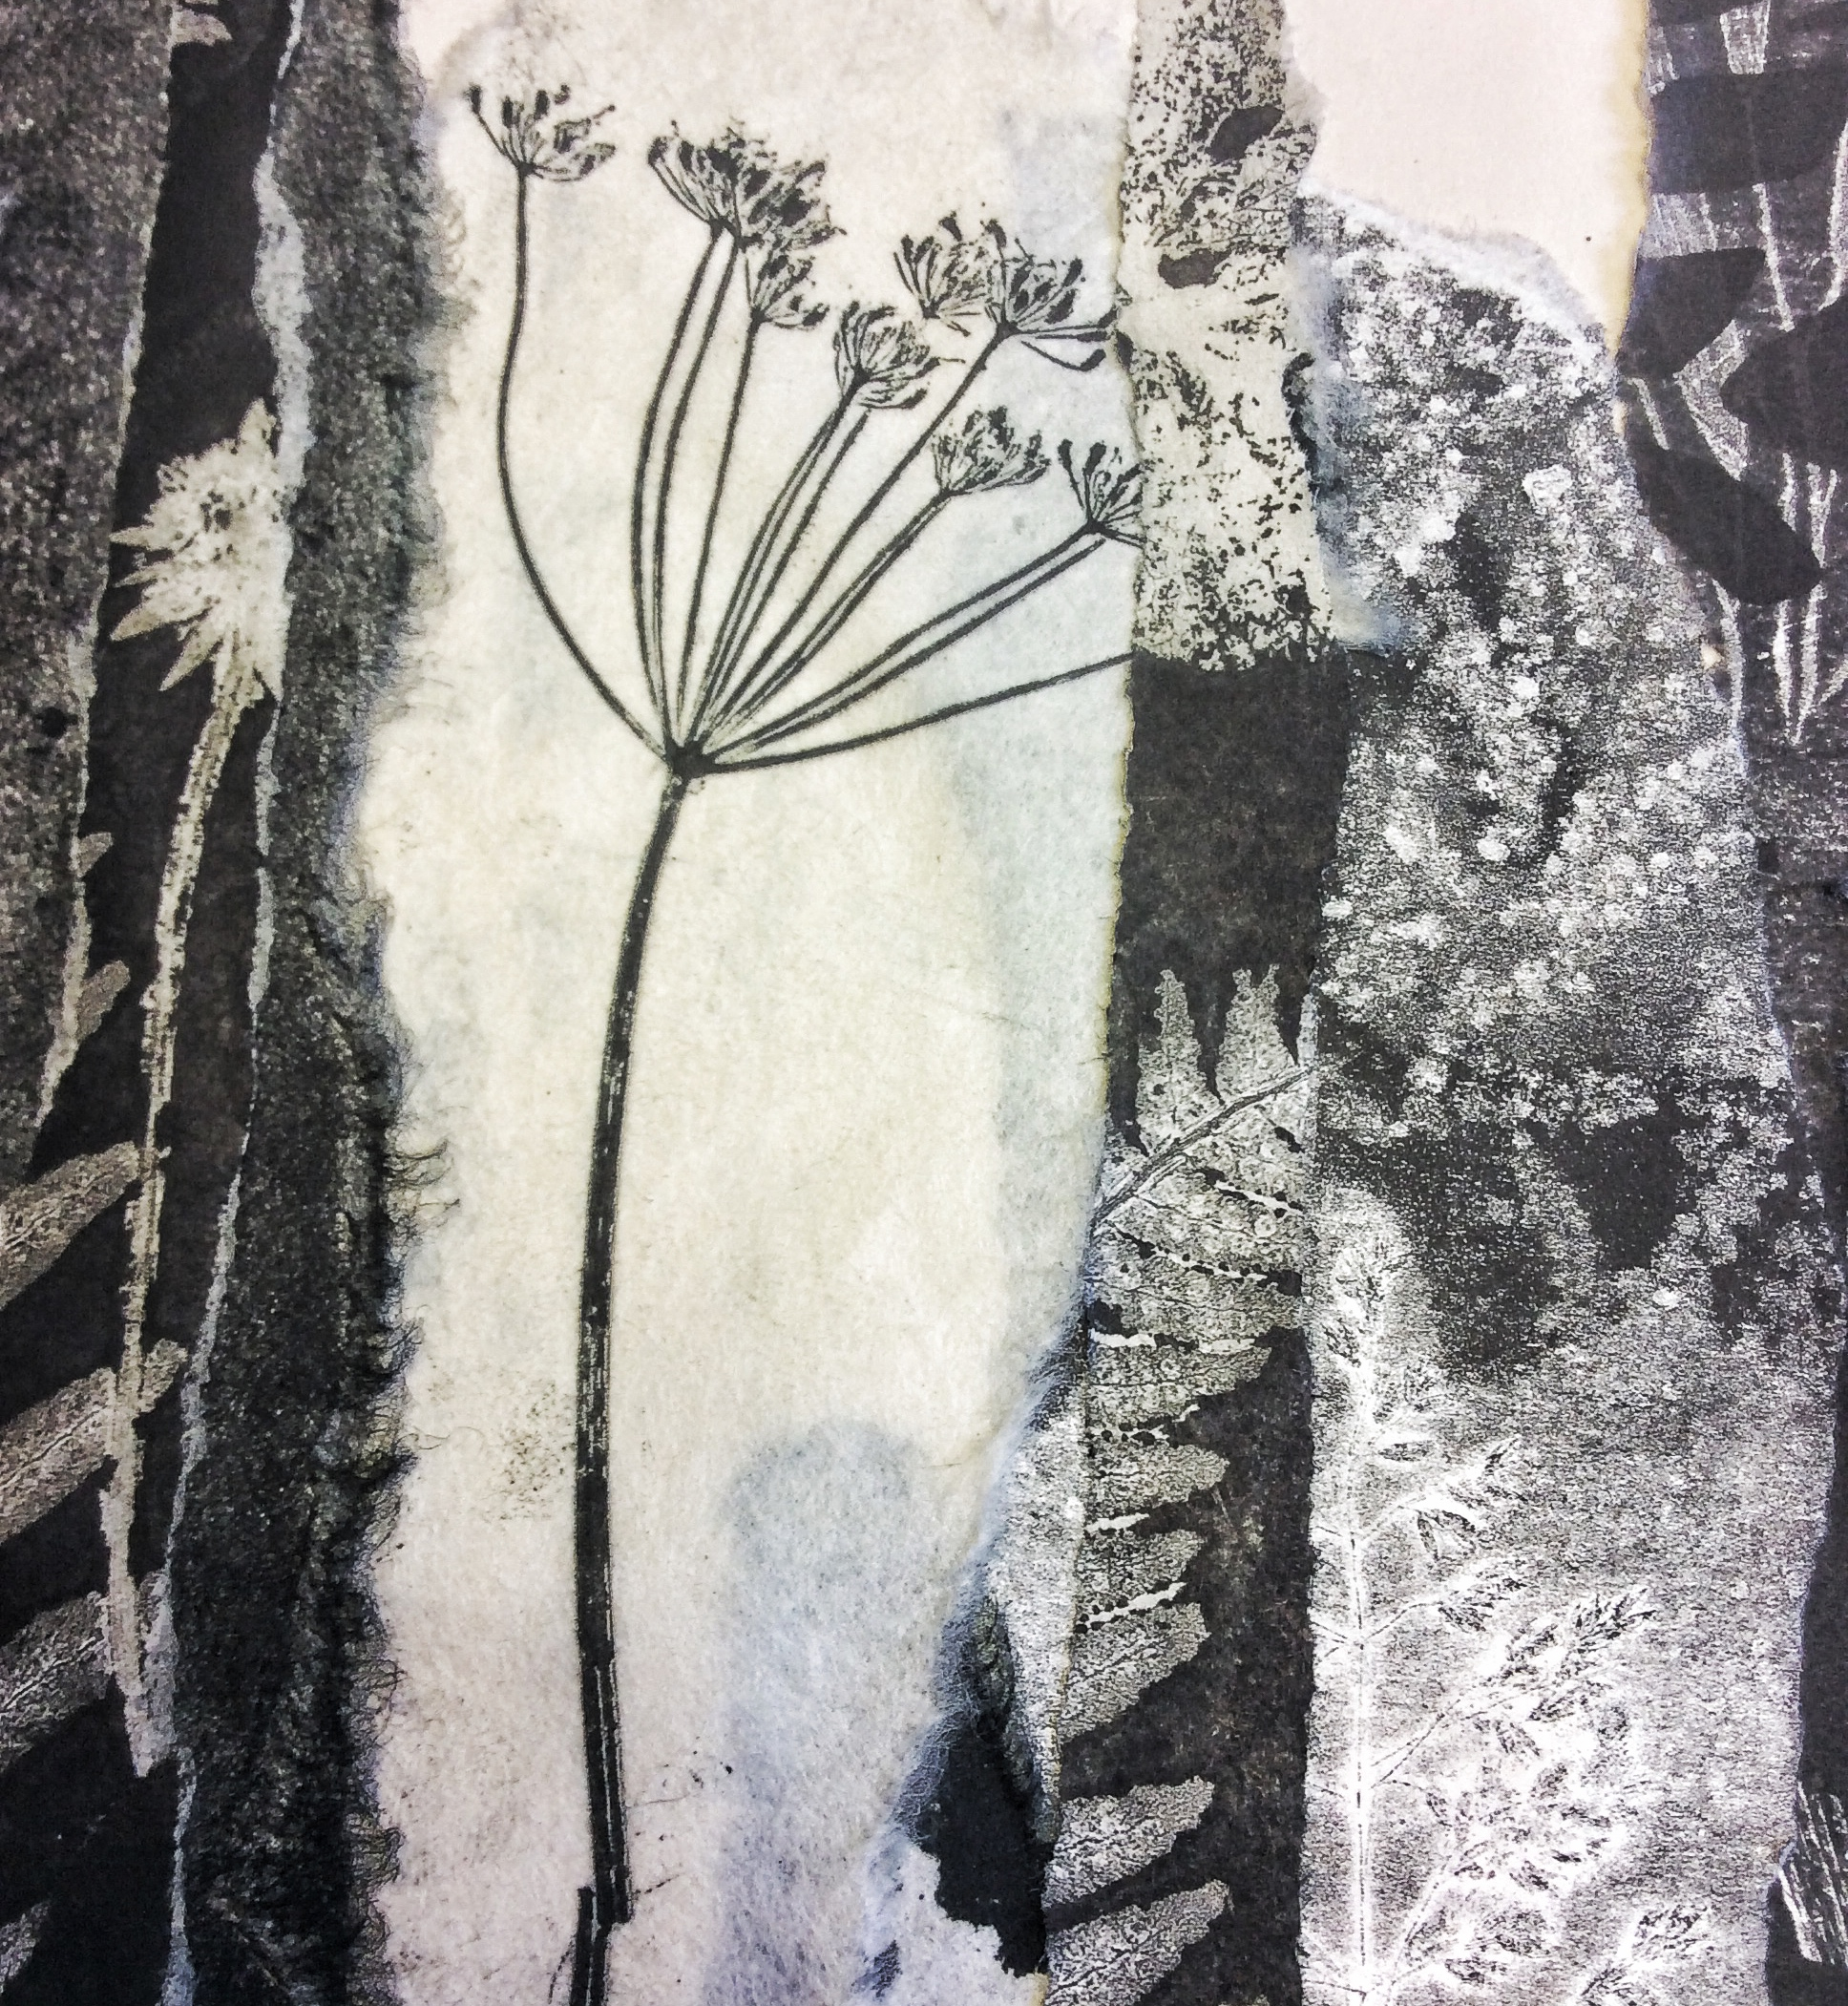 Monoprint Collage - detail